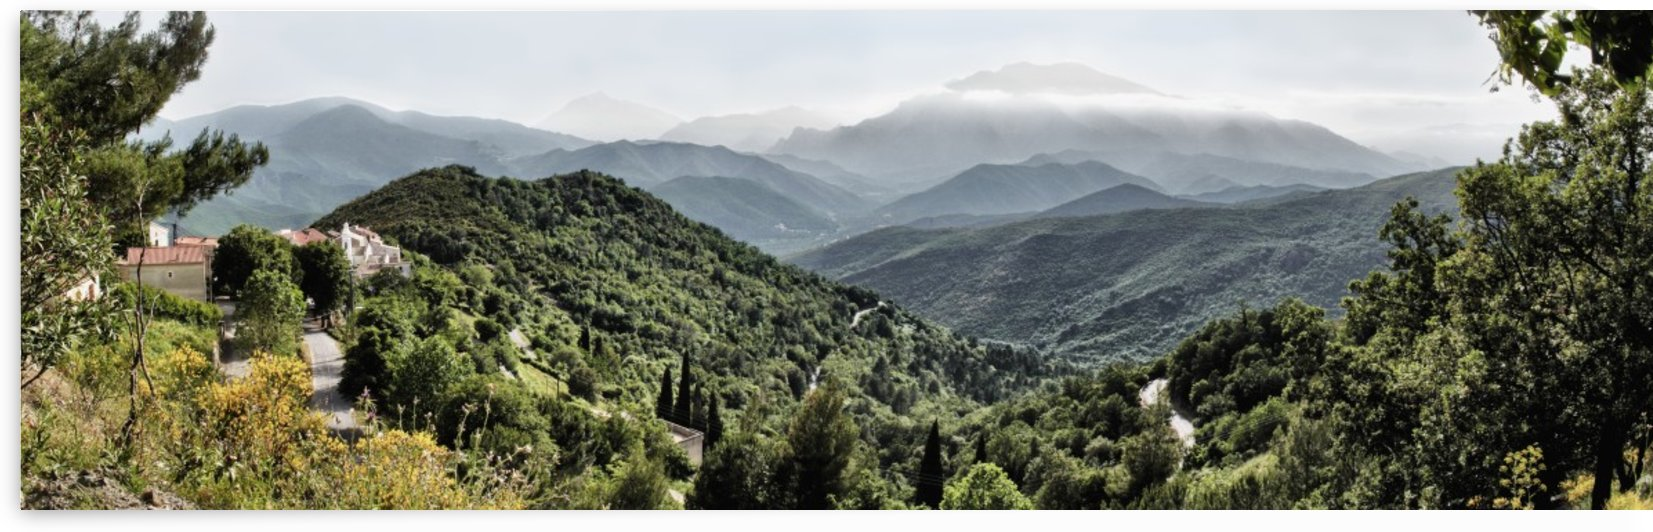 Corsica by Adrian Brockwell